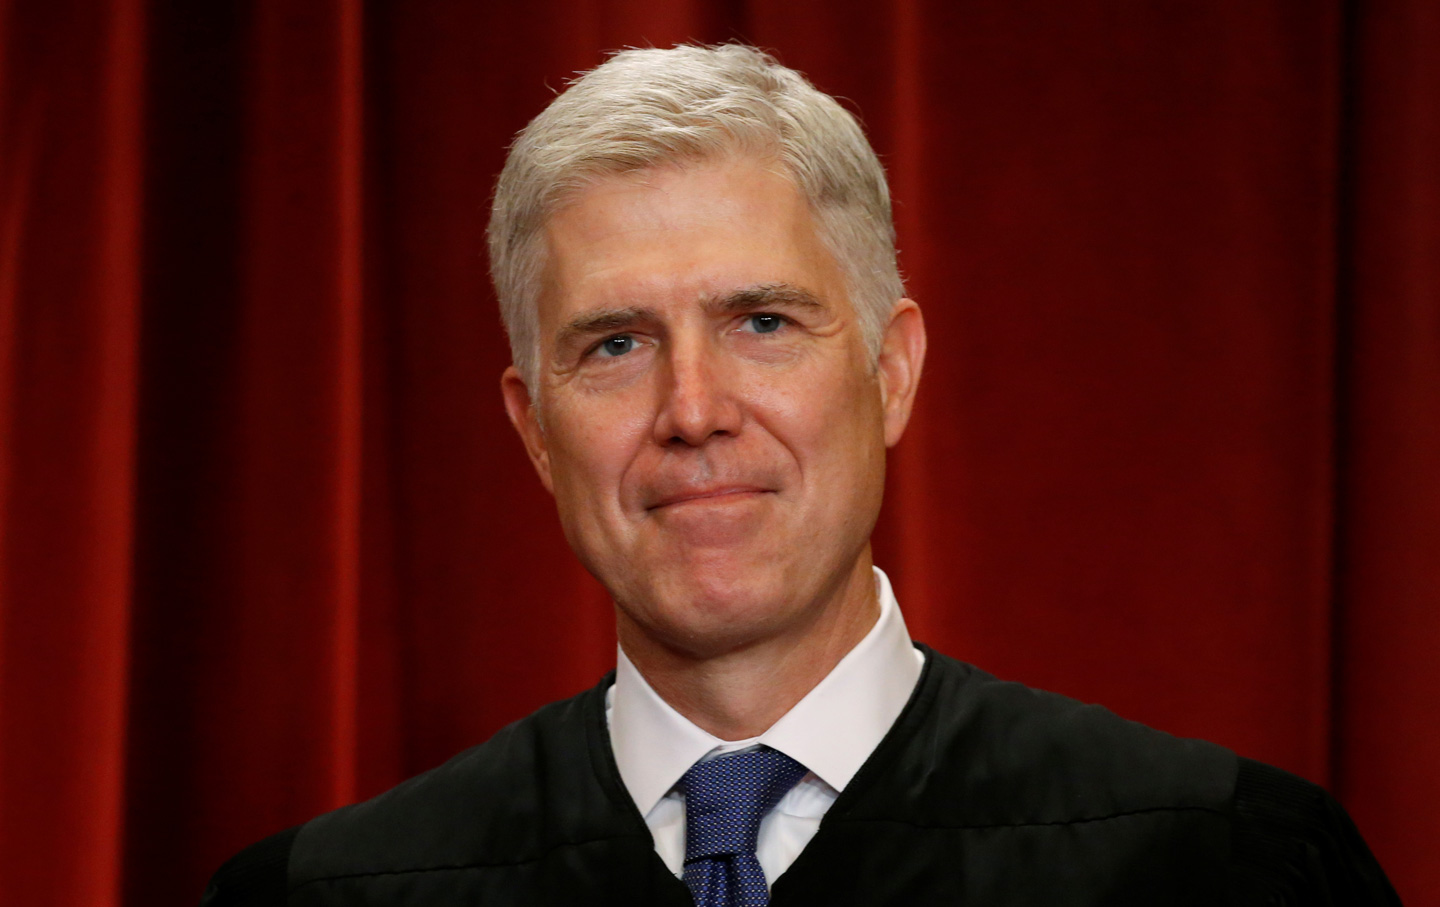 Neil-Gorsuch-Supreme-Court-rtr-img